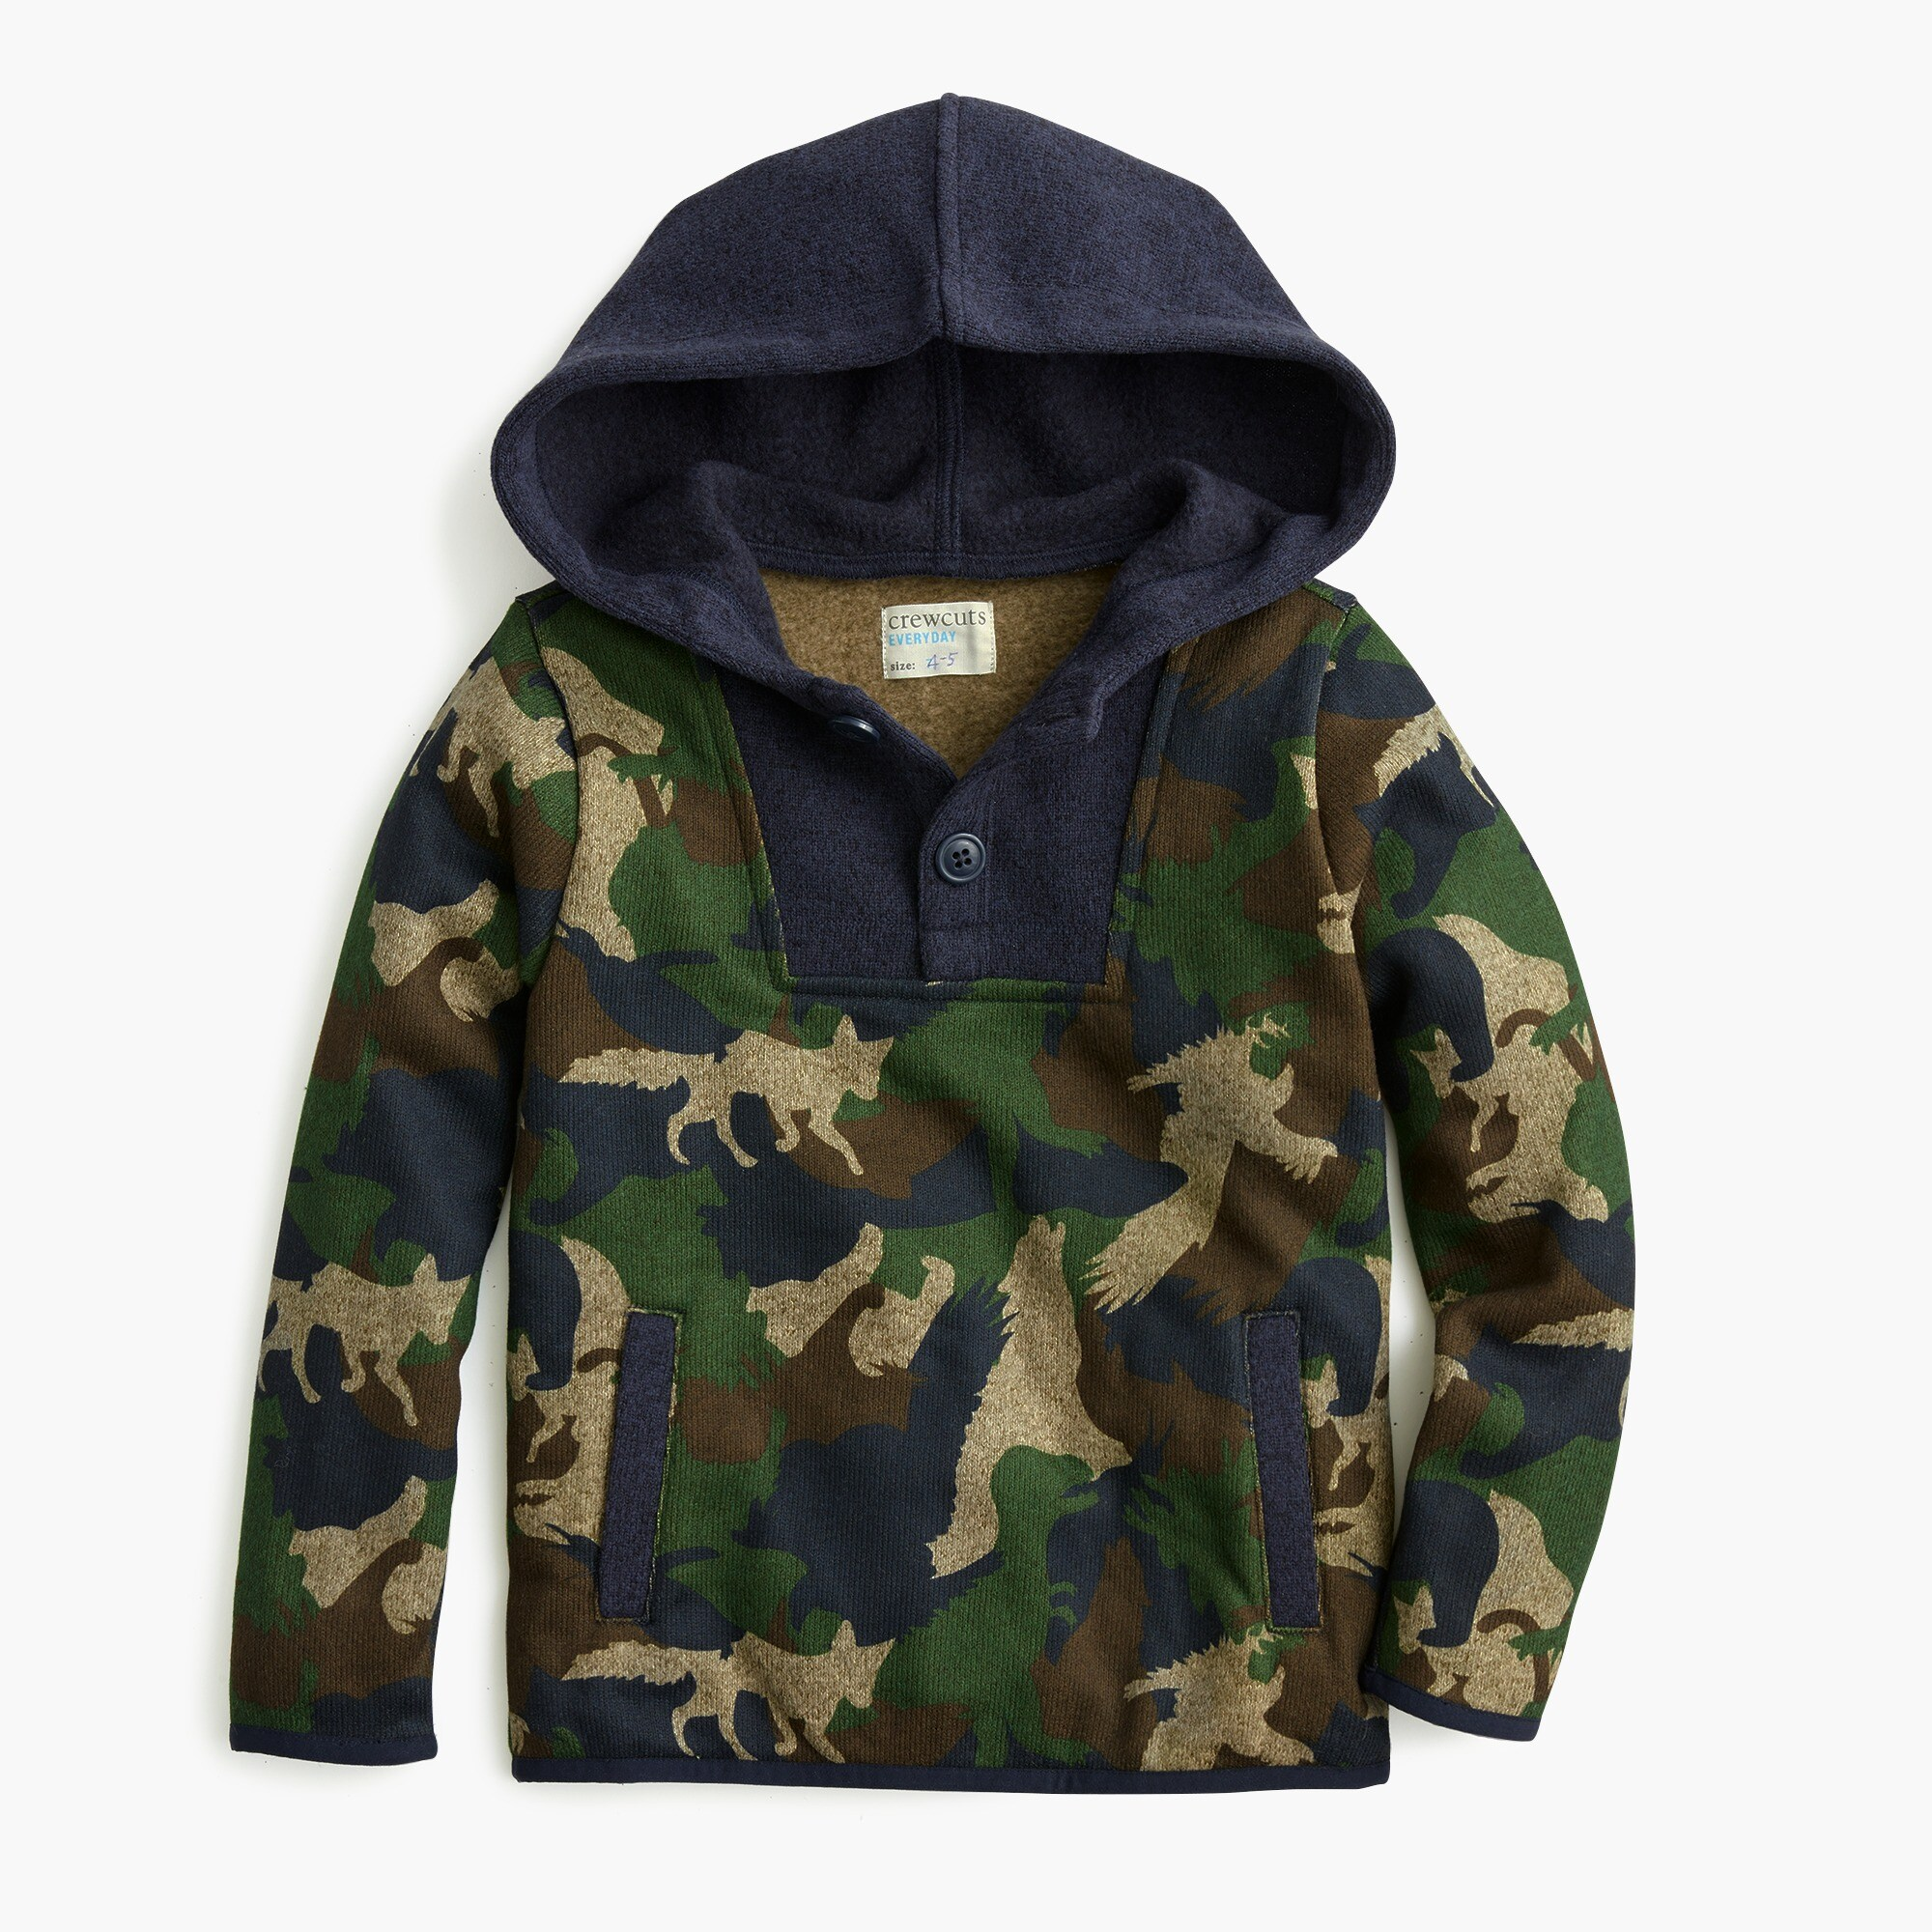 boys Boys' Summit fleece button-up popover in critter camo